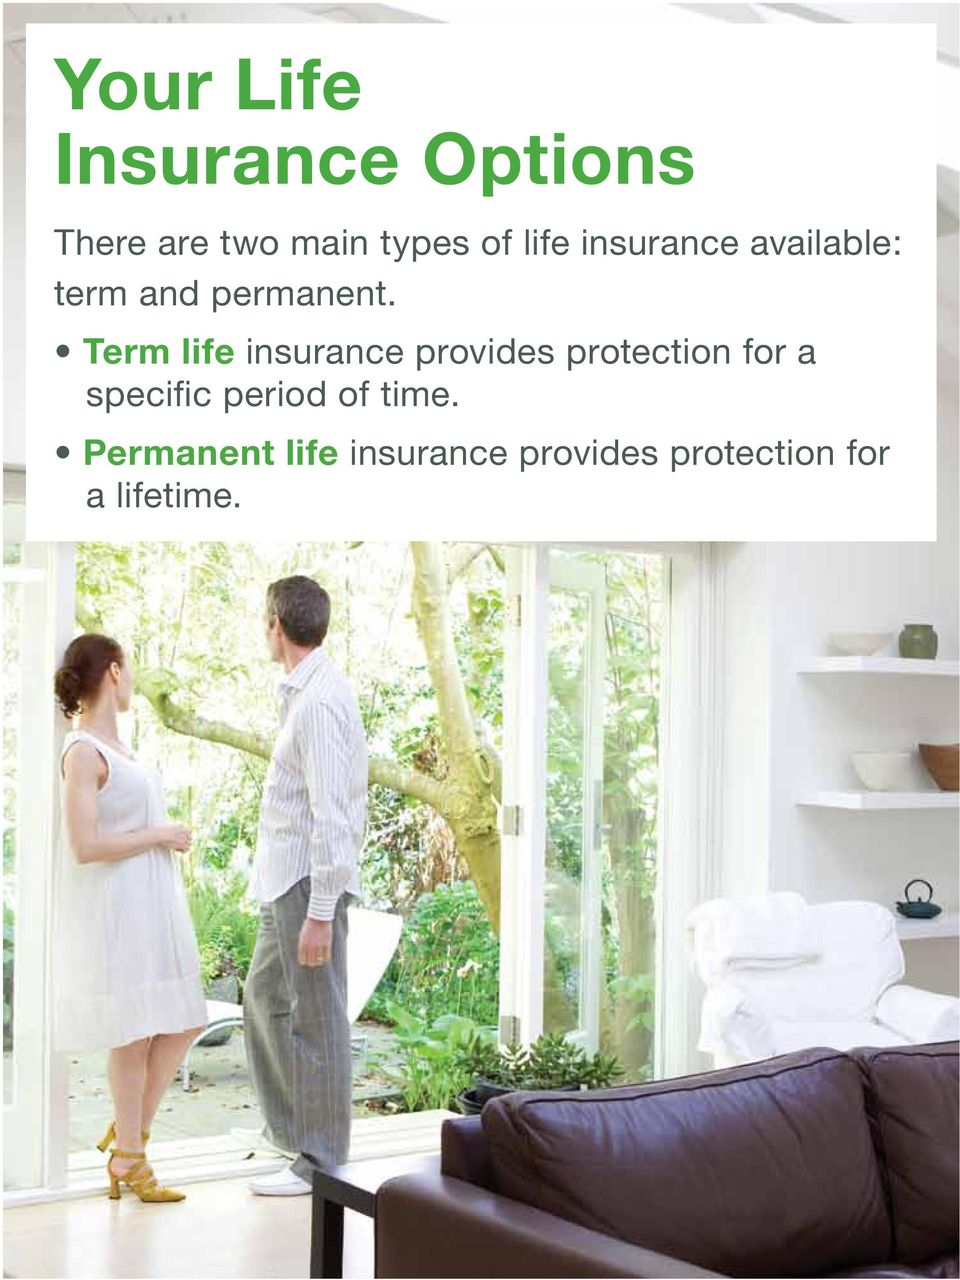 Term life insurance provides protection for a specific